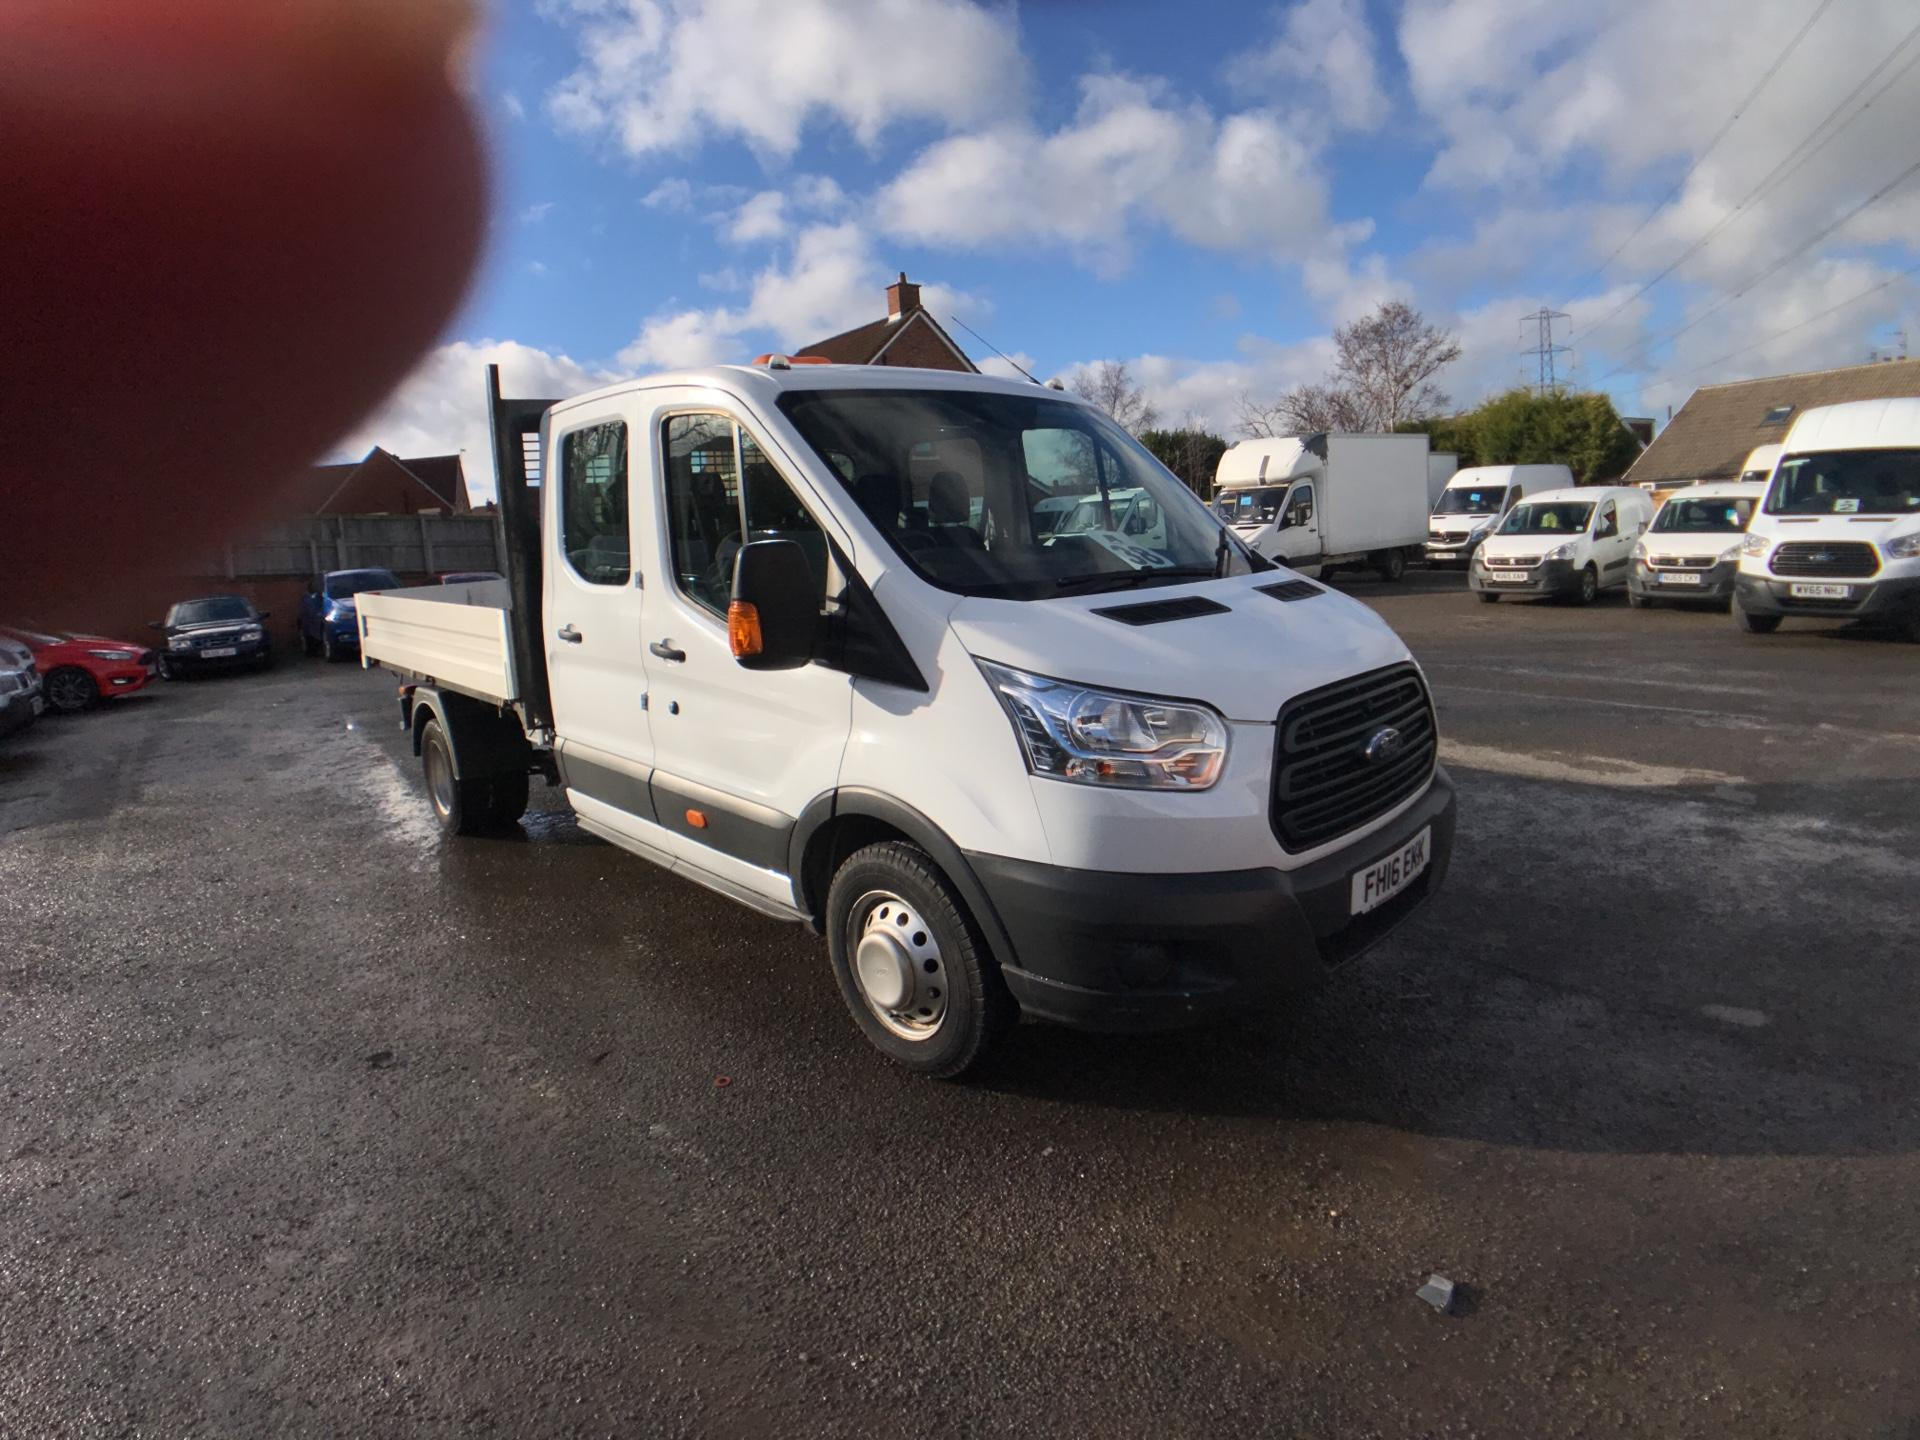 2016 Ford Transit 350 L3 DOUBLE CAB TIPPER 125PS EURO 5 *VALUE RANGE VEHICLE CONDITION REFLECTED IN PRICE* (FH16EKK)